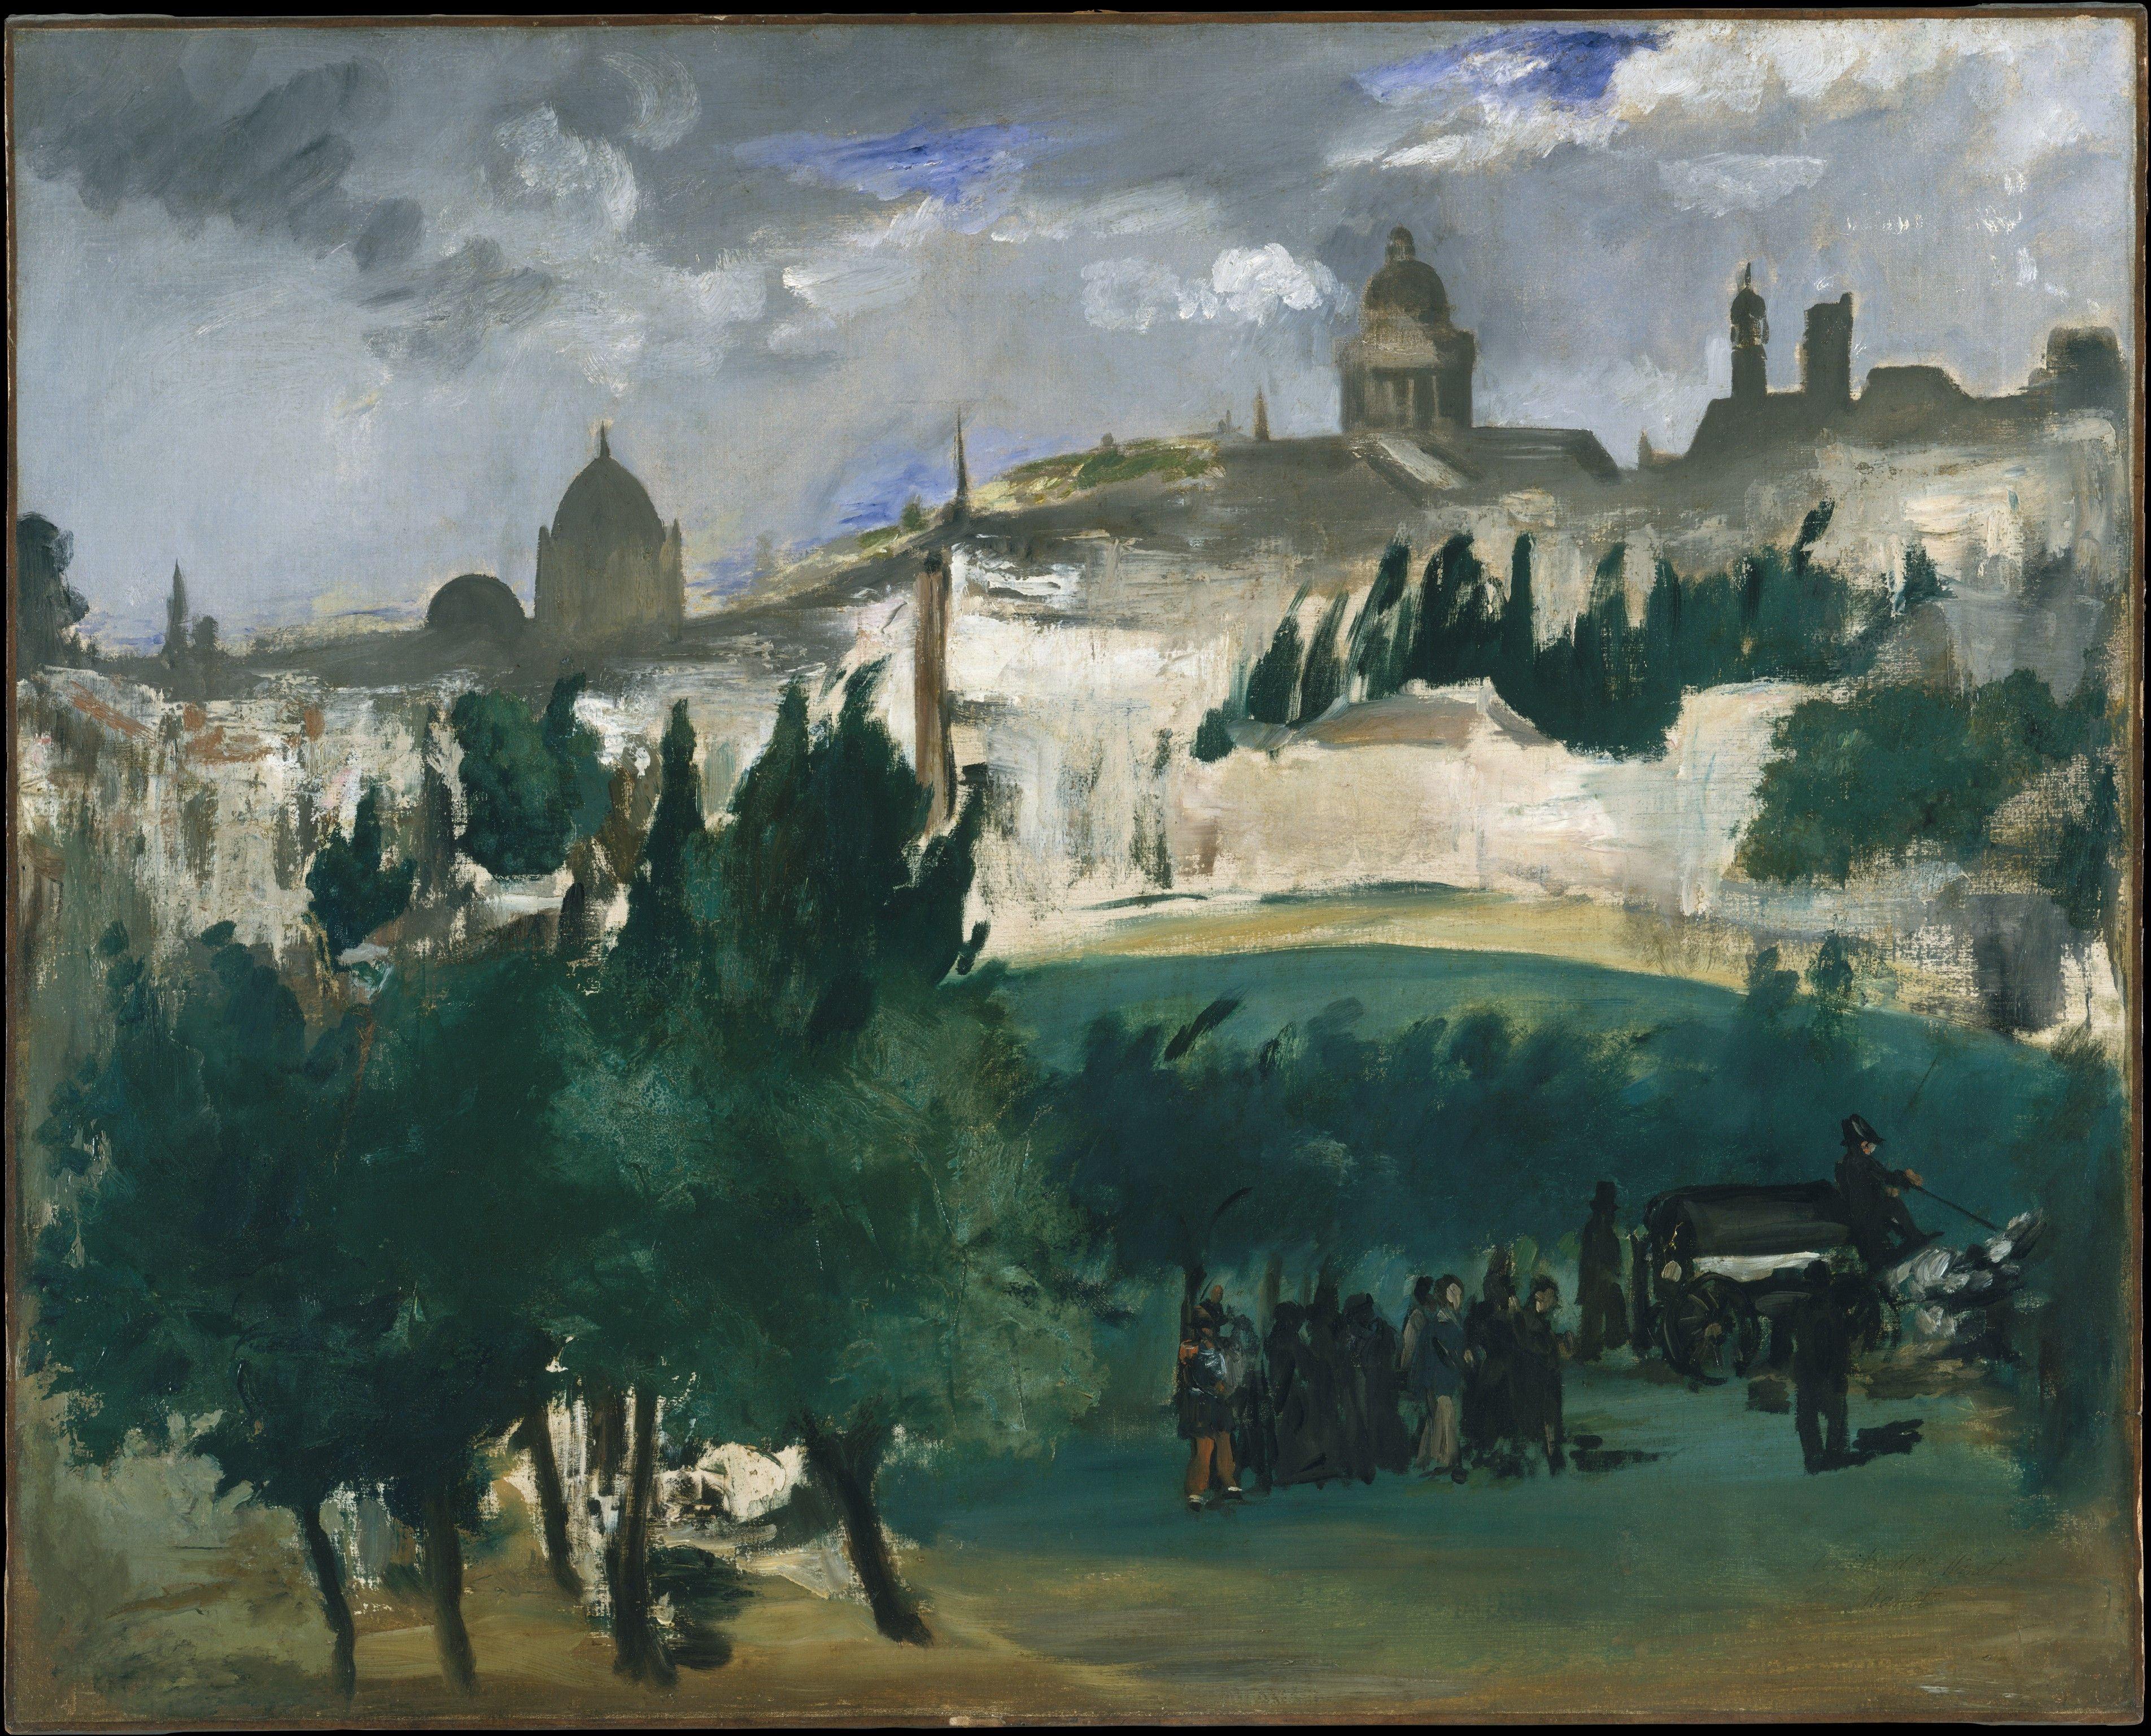 Manet S Unfinished Painting Is Thought To Depict The Funeral Of